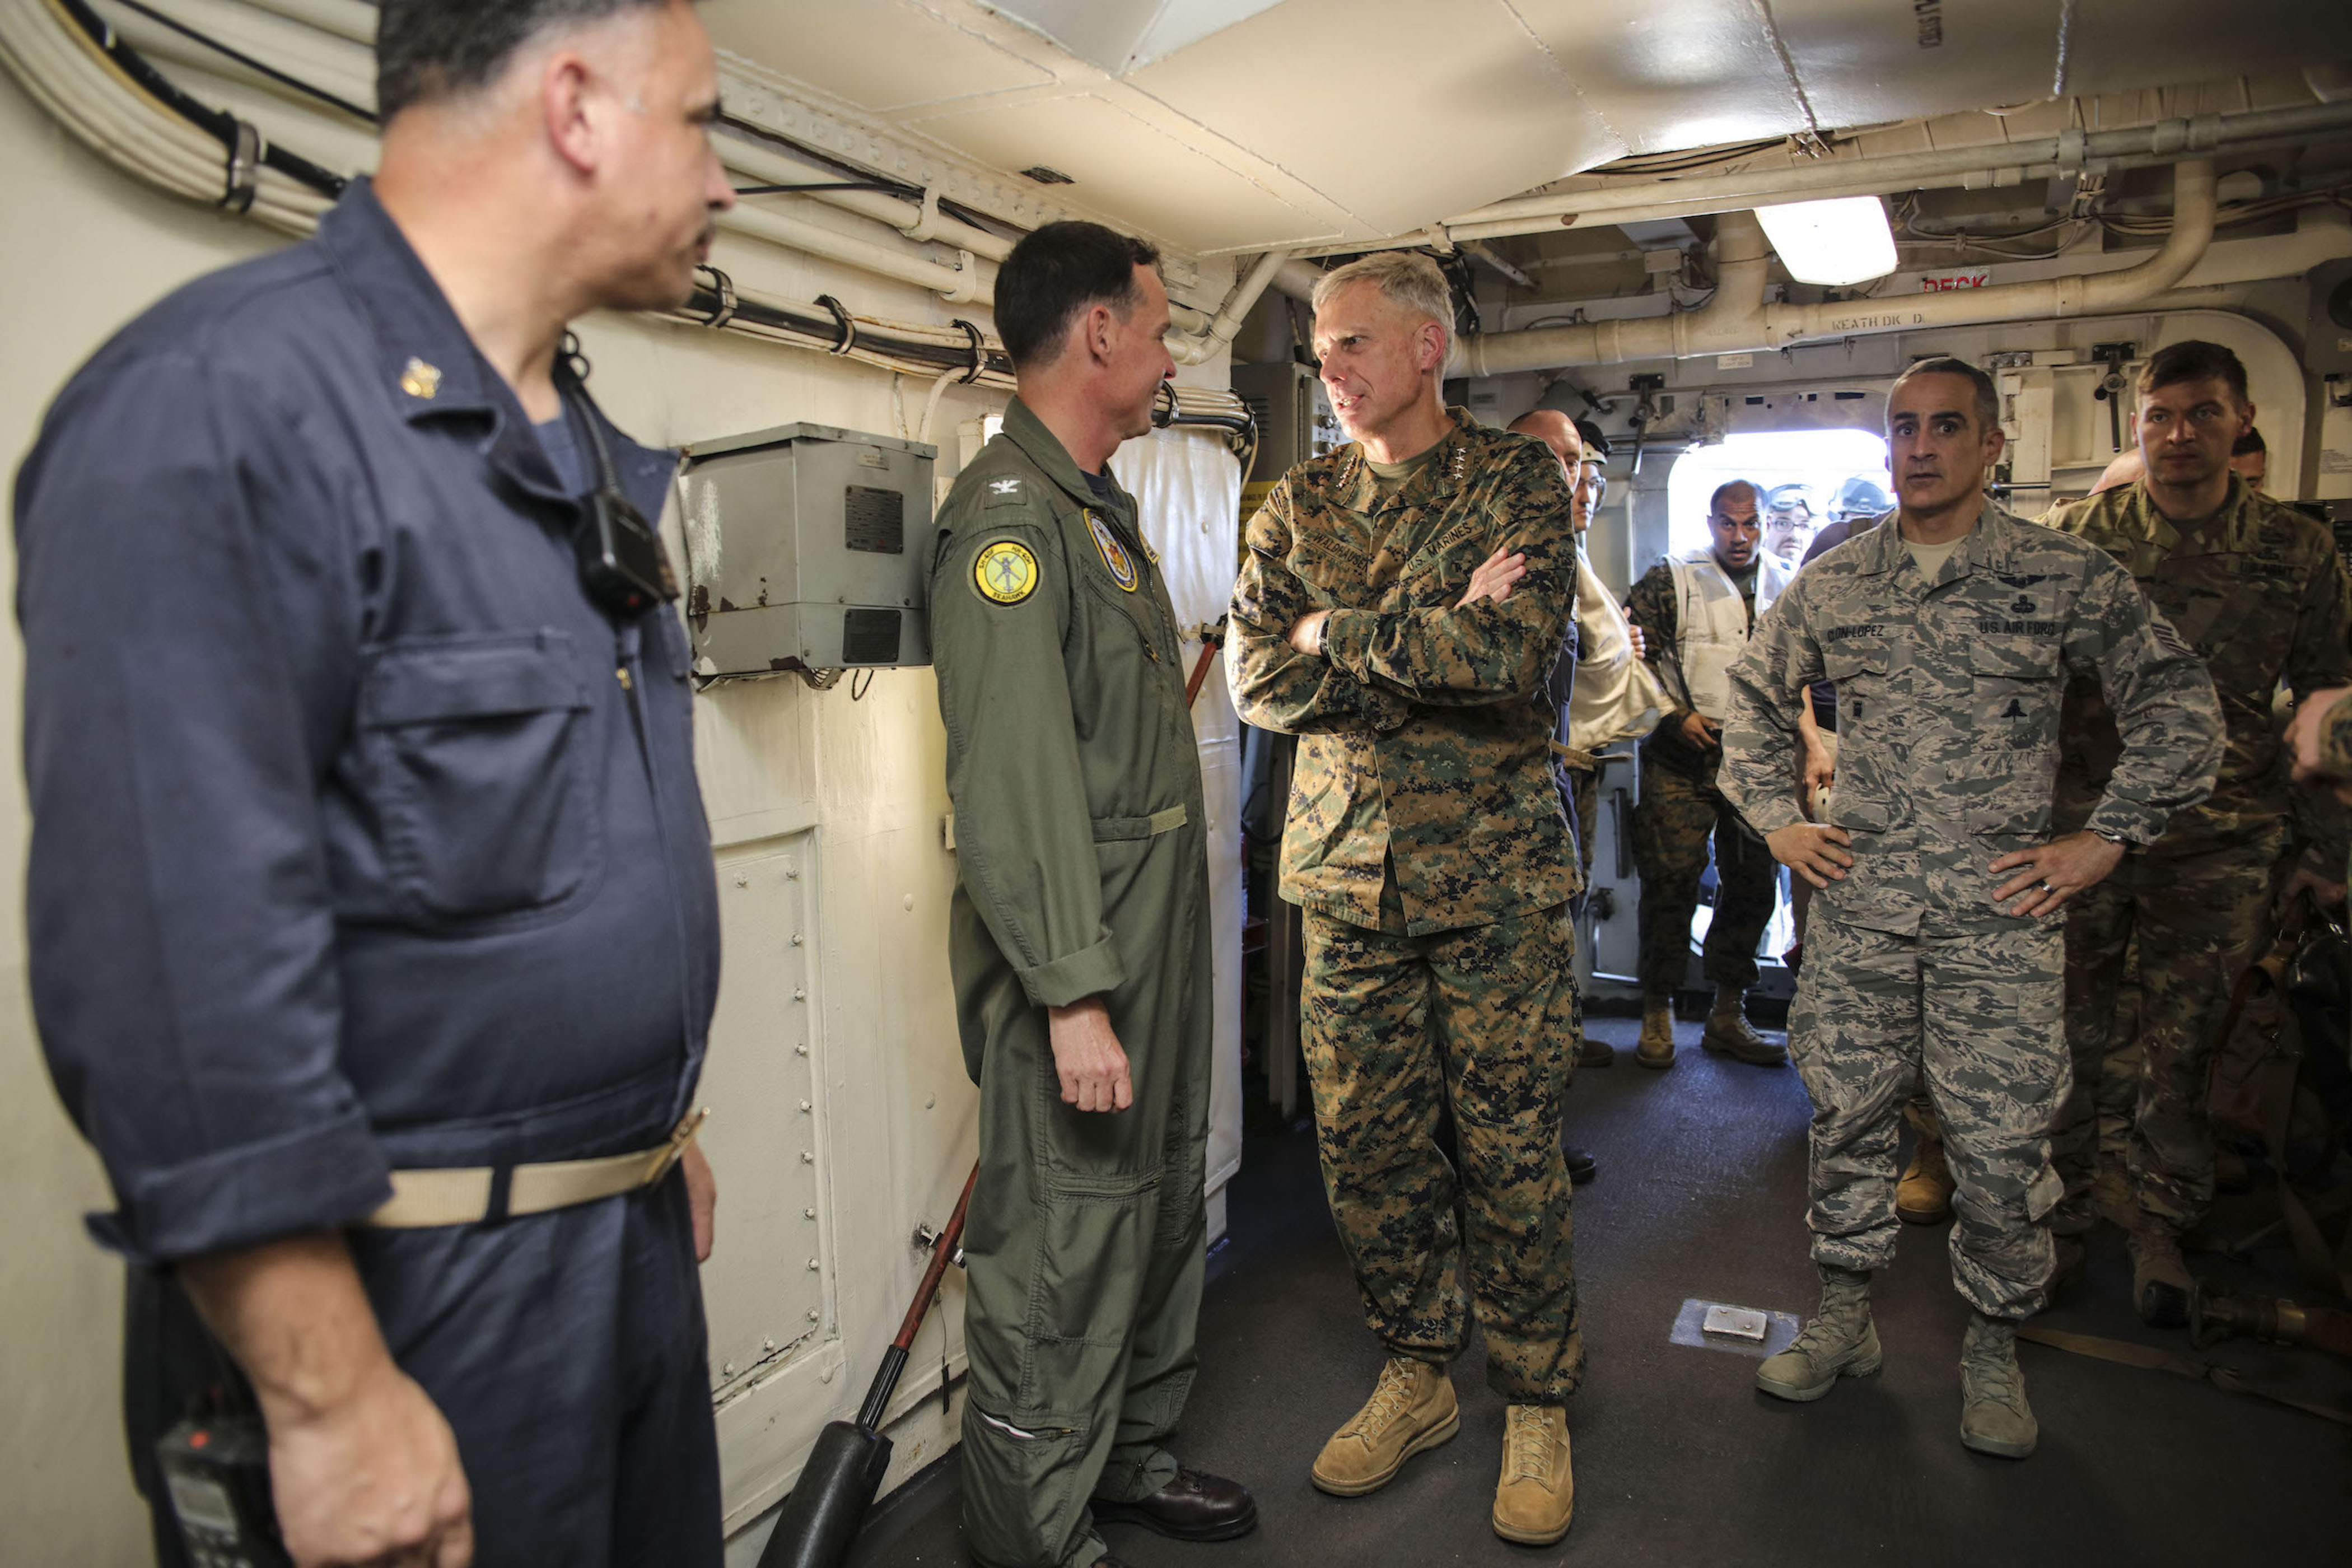 MEDITERRANEAN SEA (Sept. 6, 2017) U.S. Marine Gen. Thomas D. Waldhauser, commander, U.S. Africa Command, middle, speaks with Capt. Max Clark, commanding officer of the San Antonio-class amphibious transport dock ship USS Mesa Verde (LPD 19), during a visit aboard the ship Sept. 6, 2017. The ship is deployed with the Bataan Amphibious Ready Group and 24th Marine Expeditionary Unit to support maritime security operations and theater security cooperation efforts in the U.S. 6th Fleet area of operations. (U.S. Navy photo by Mass Communication Specialist 2nd Class Brent Pyfrom/Released)